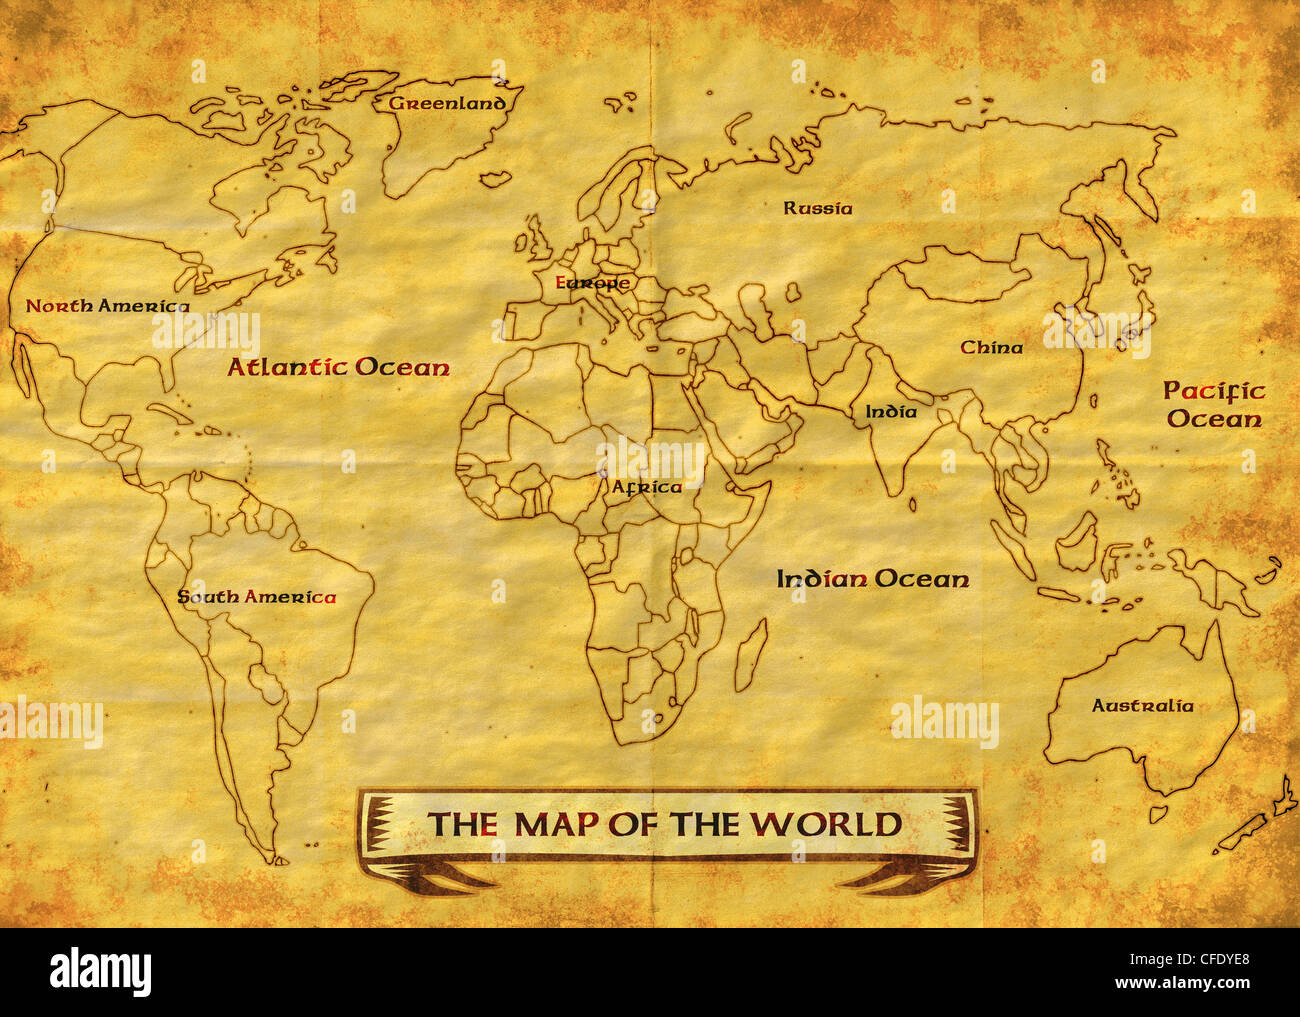 illustration drawing of a map of the world showing the continents